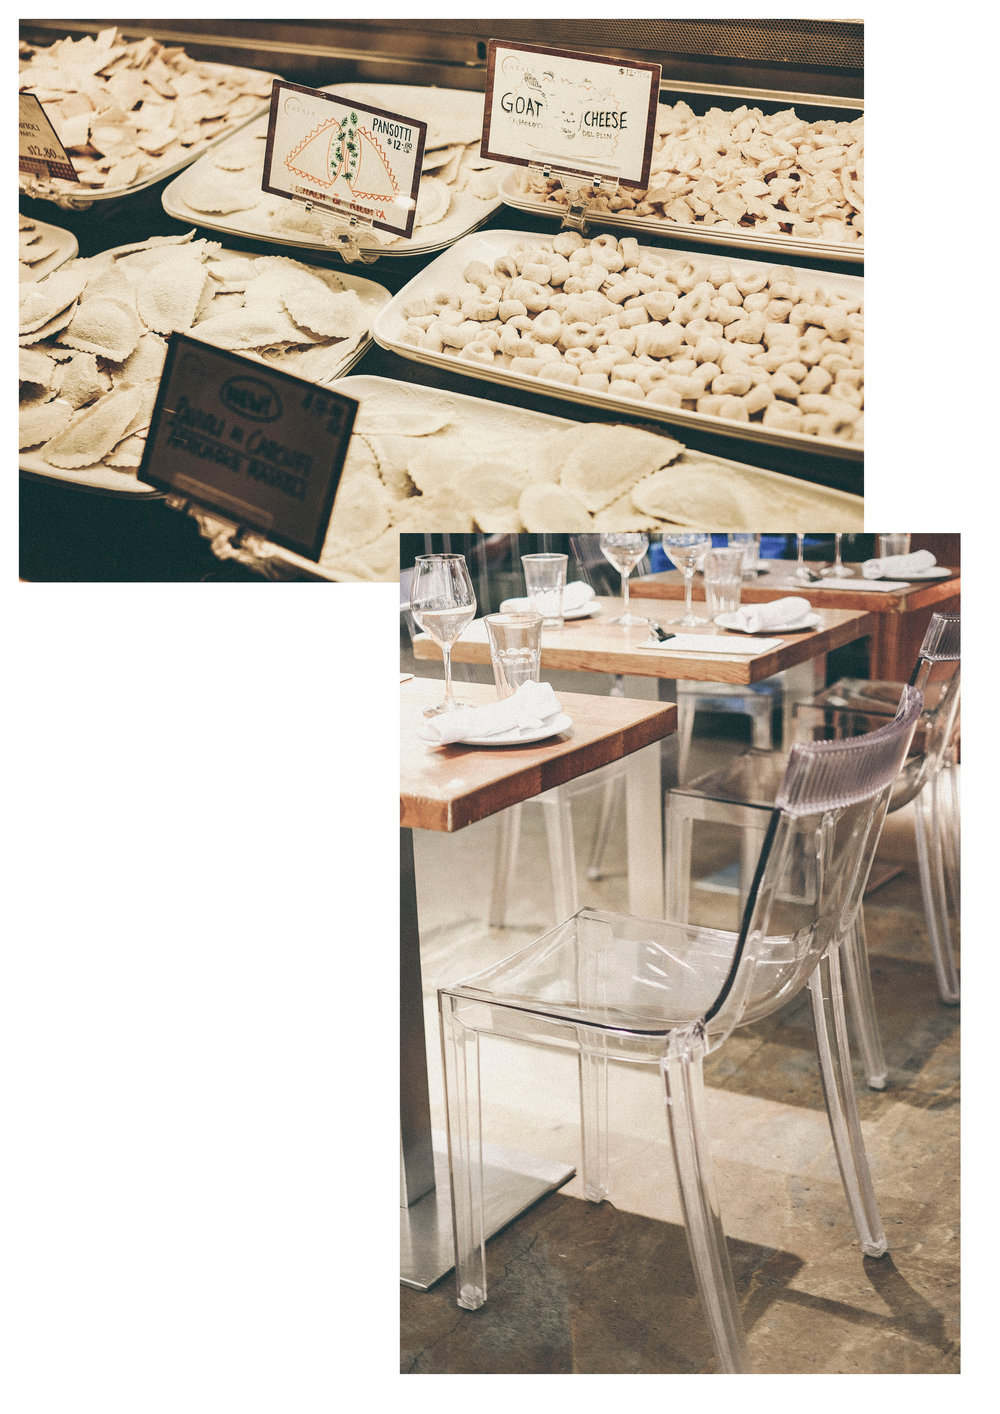 a day at eataly, new york city www.derrive.com #nyc #newyork #eataly